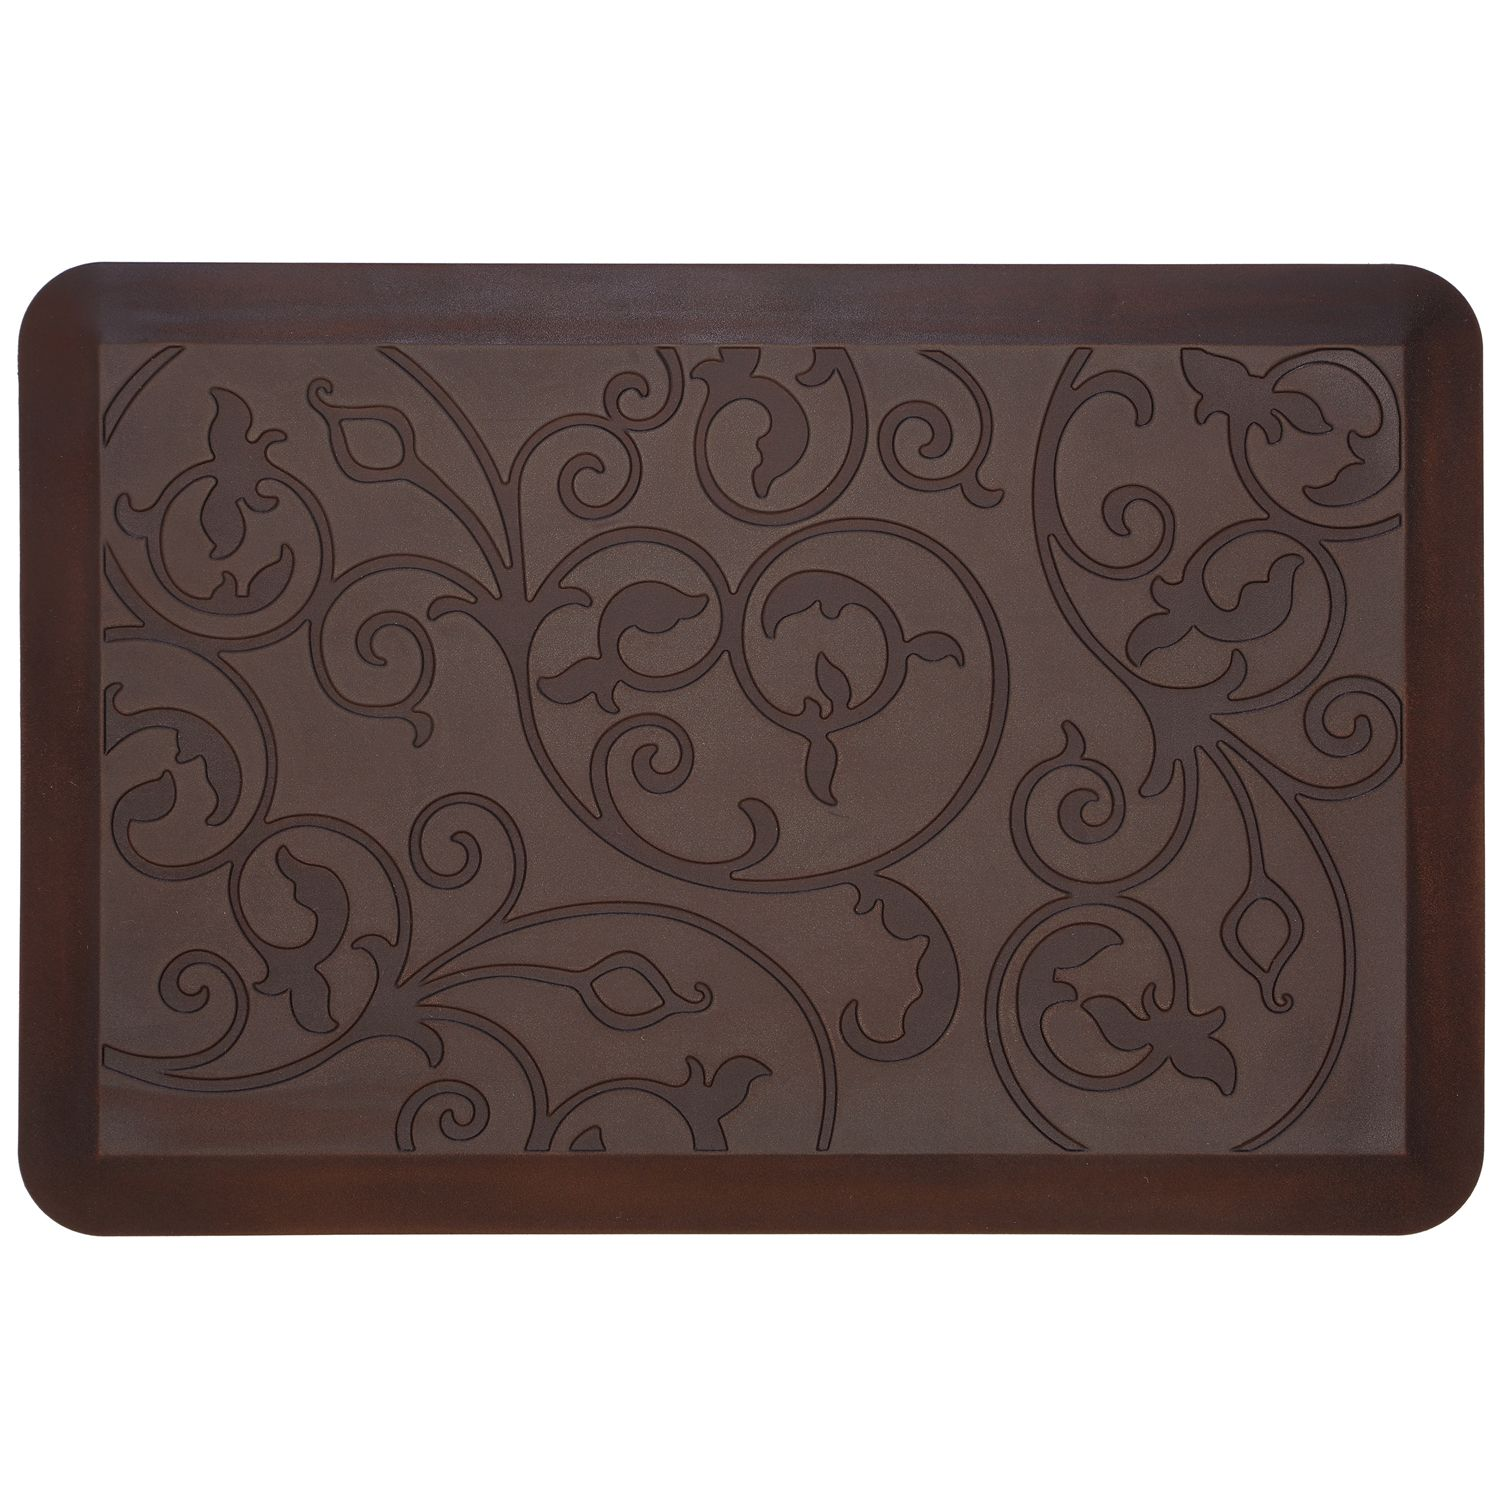 High Quality Food Network™ Ultra Comfort Scroll Kitchen Mat